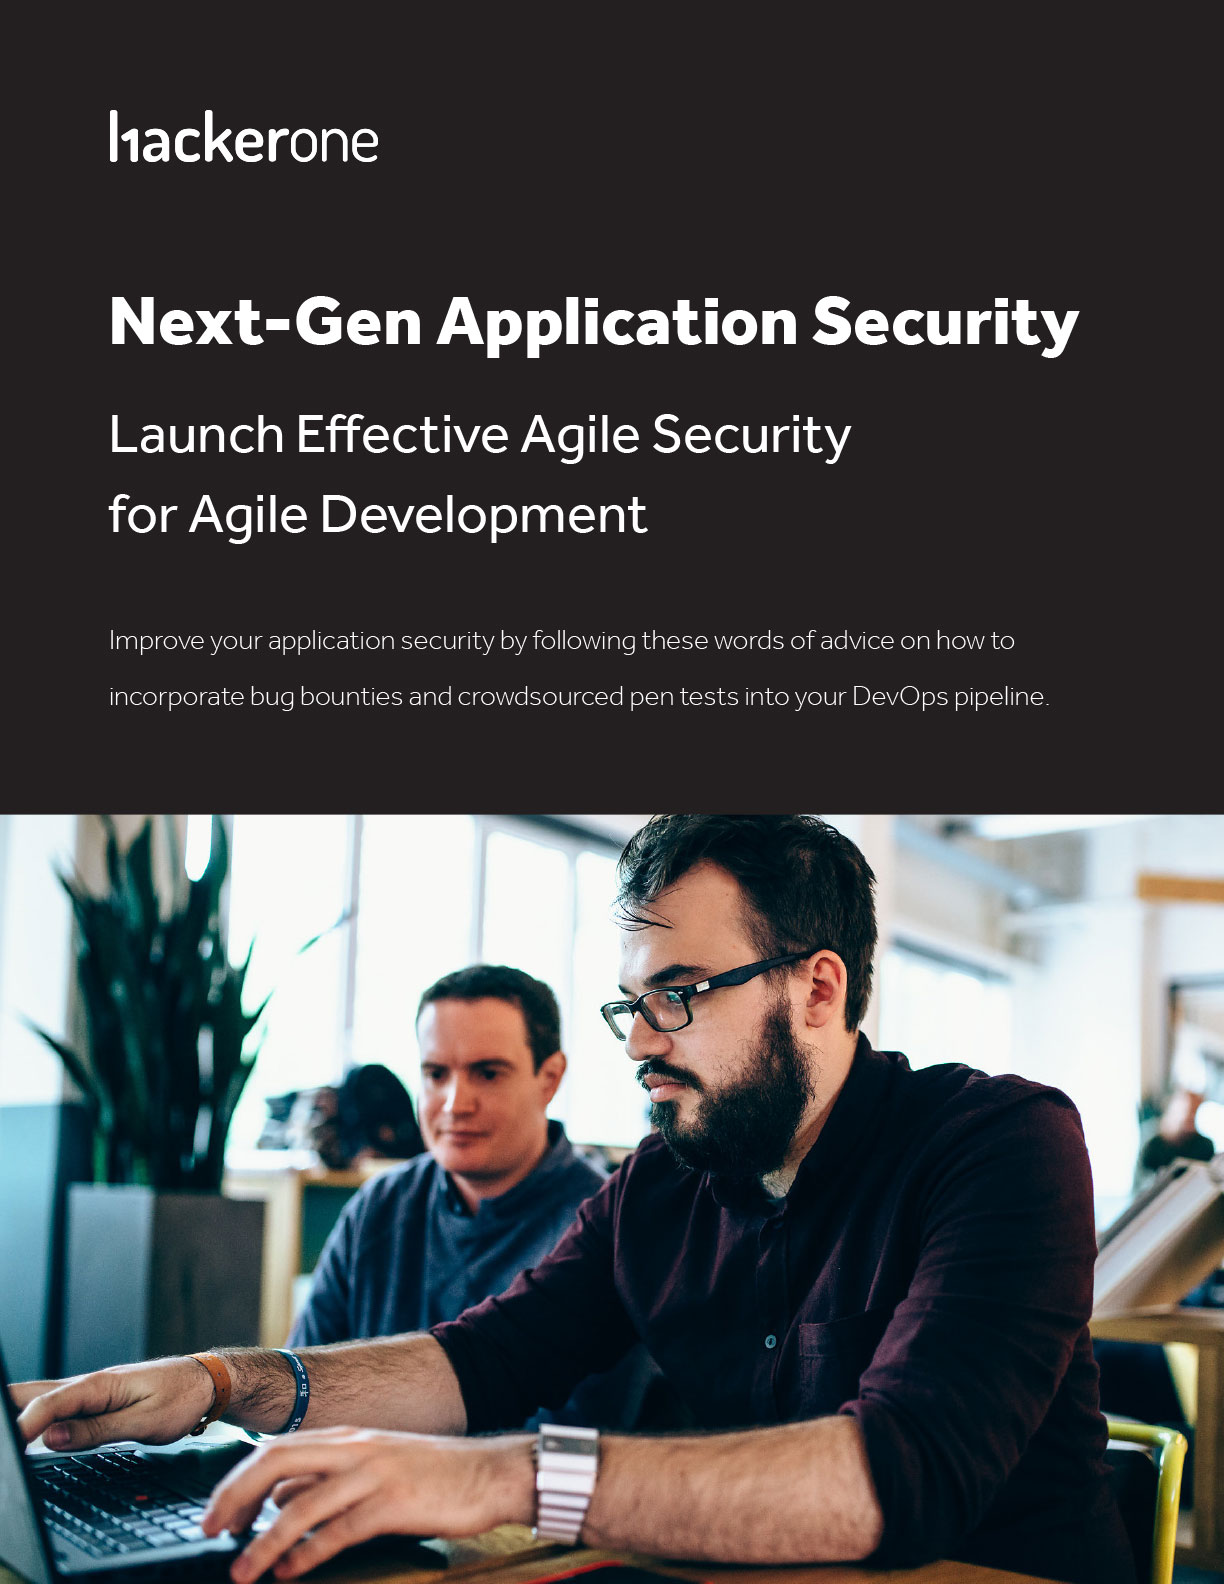 Next-Gen Application Security